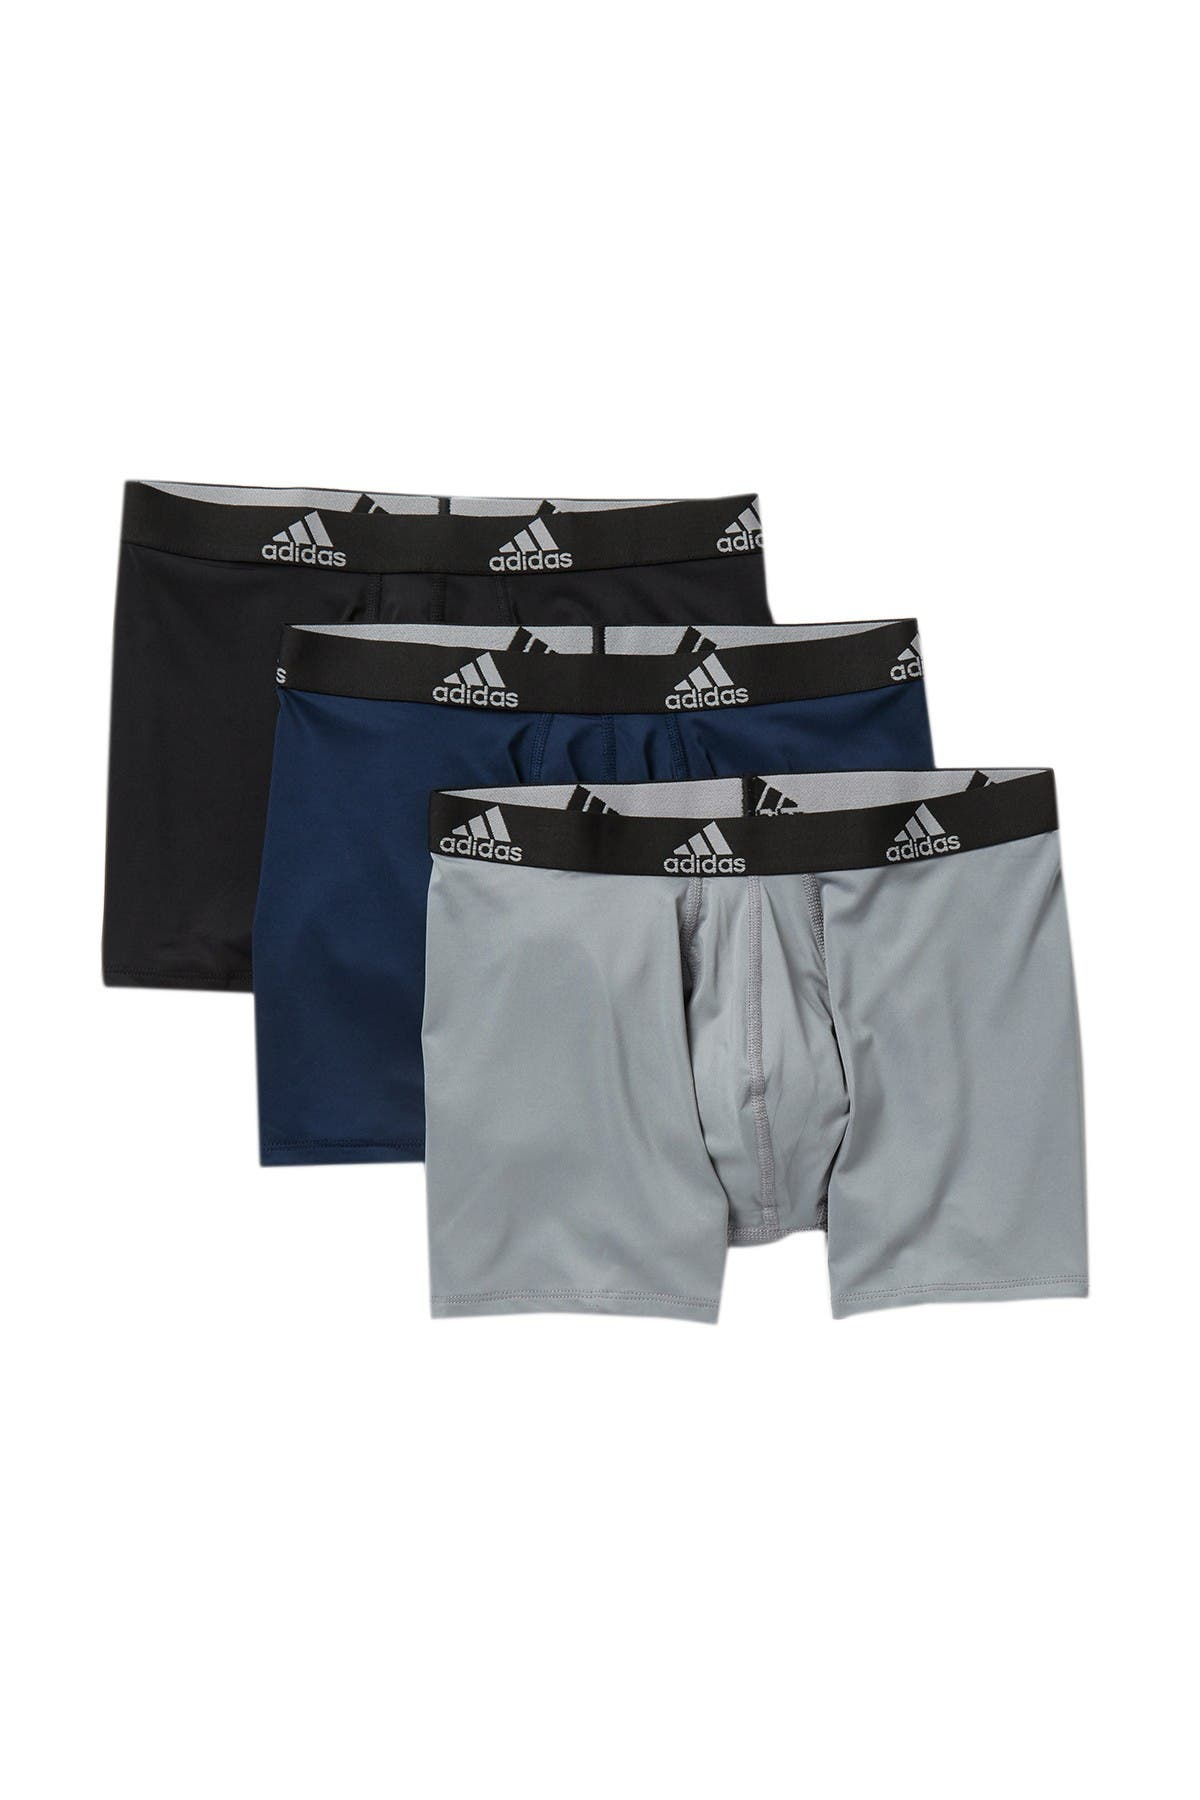 Image of adidas Climalite Performance Boxer Briefs - Pack of 3